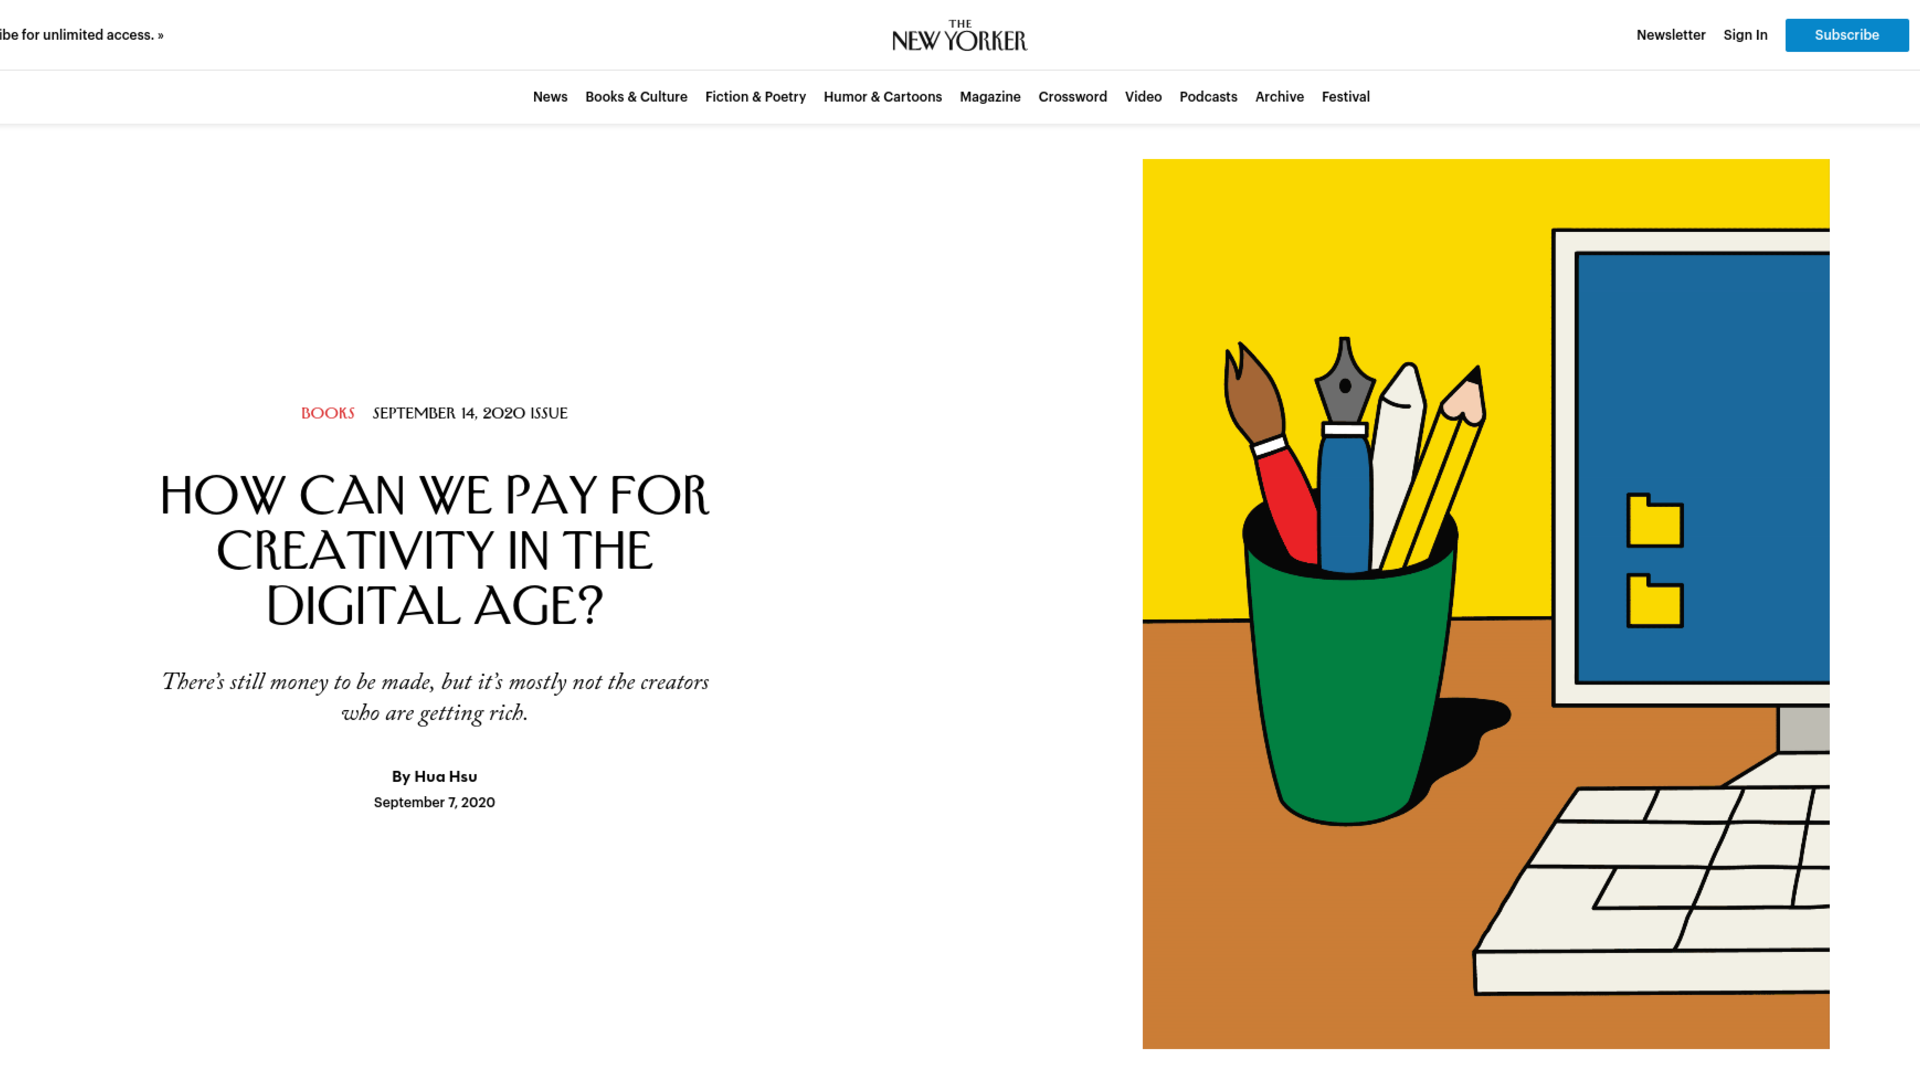 Fairness Rocks News How Can We Pay for Creativity in the Digital Age?